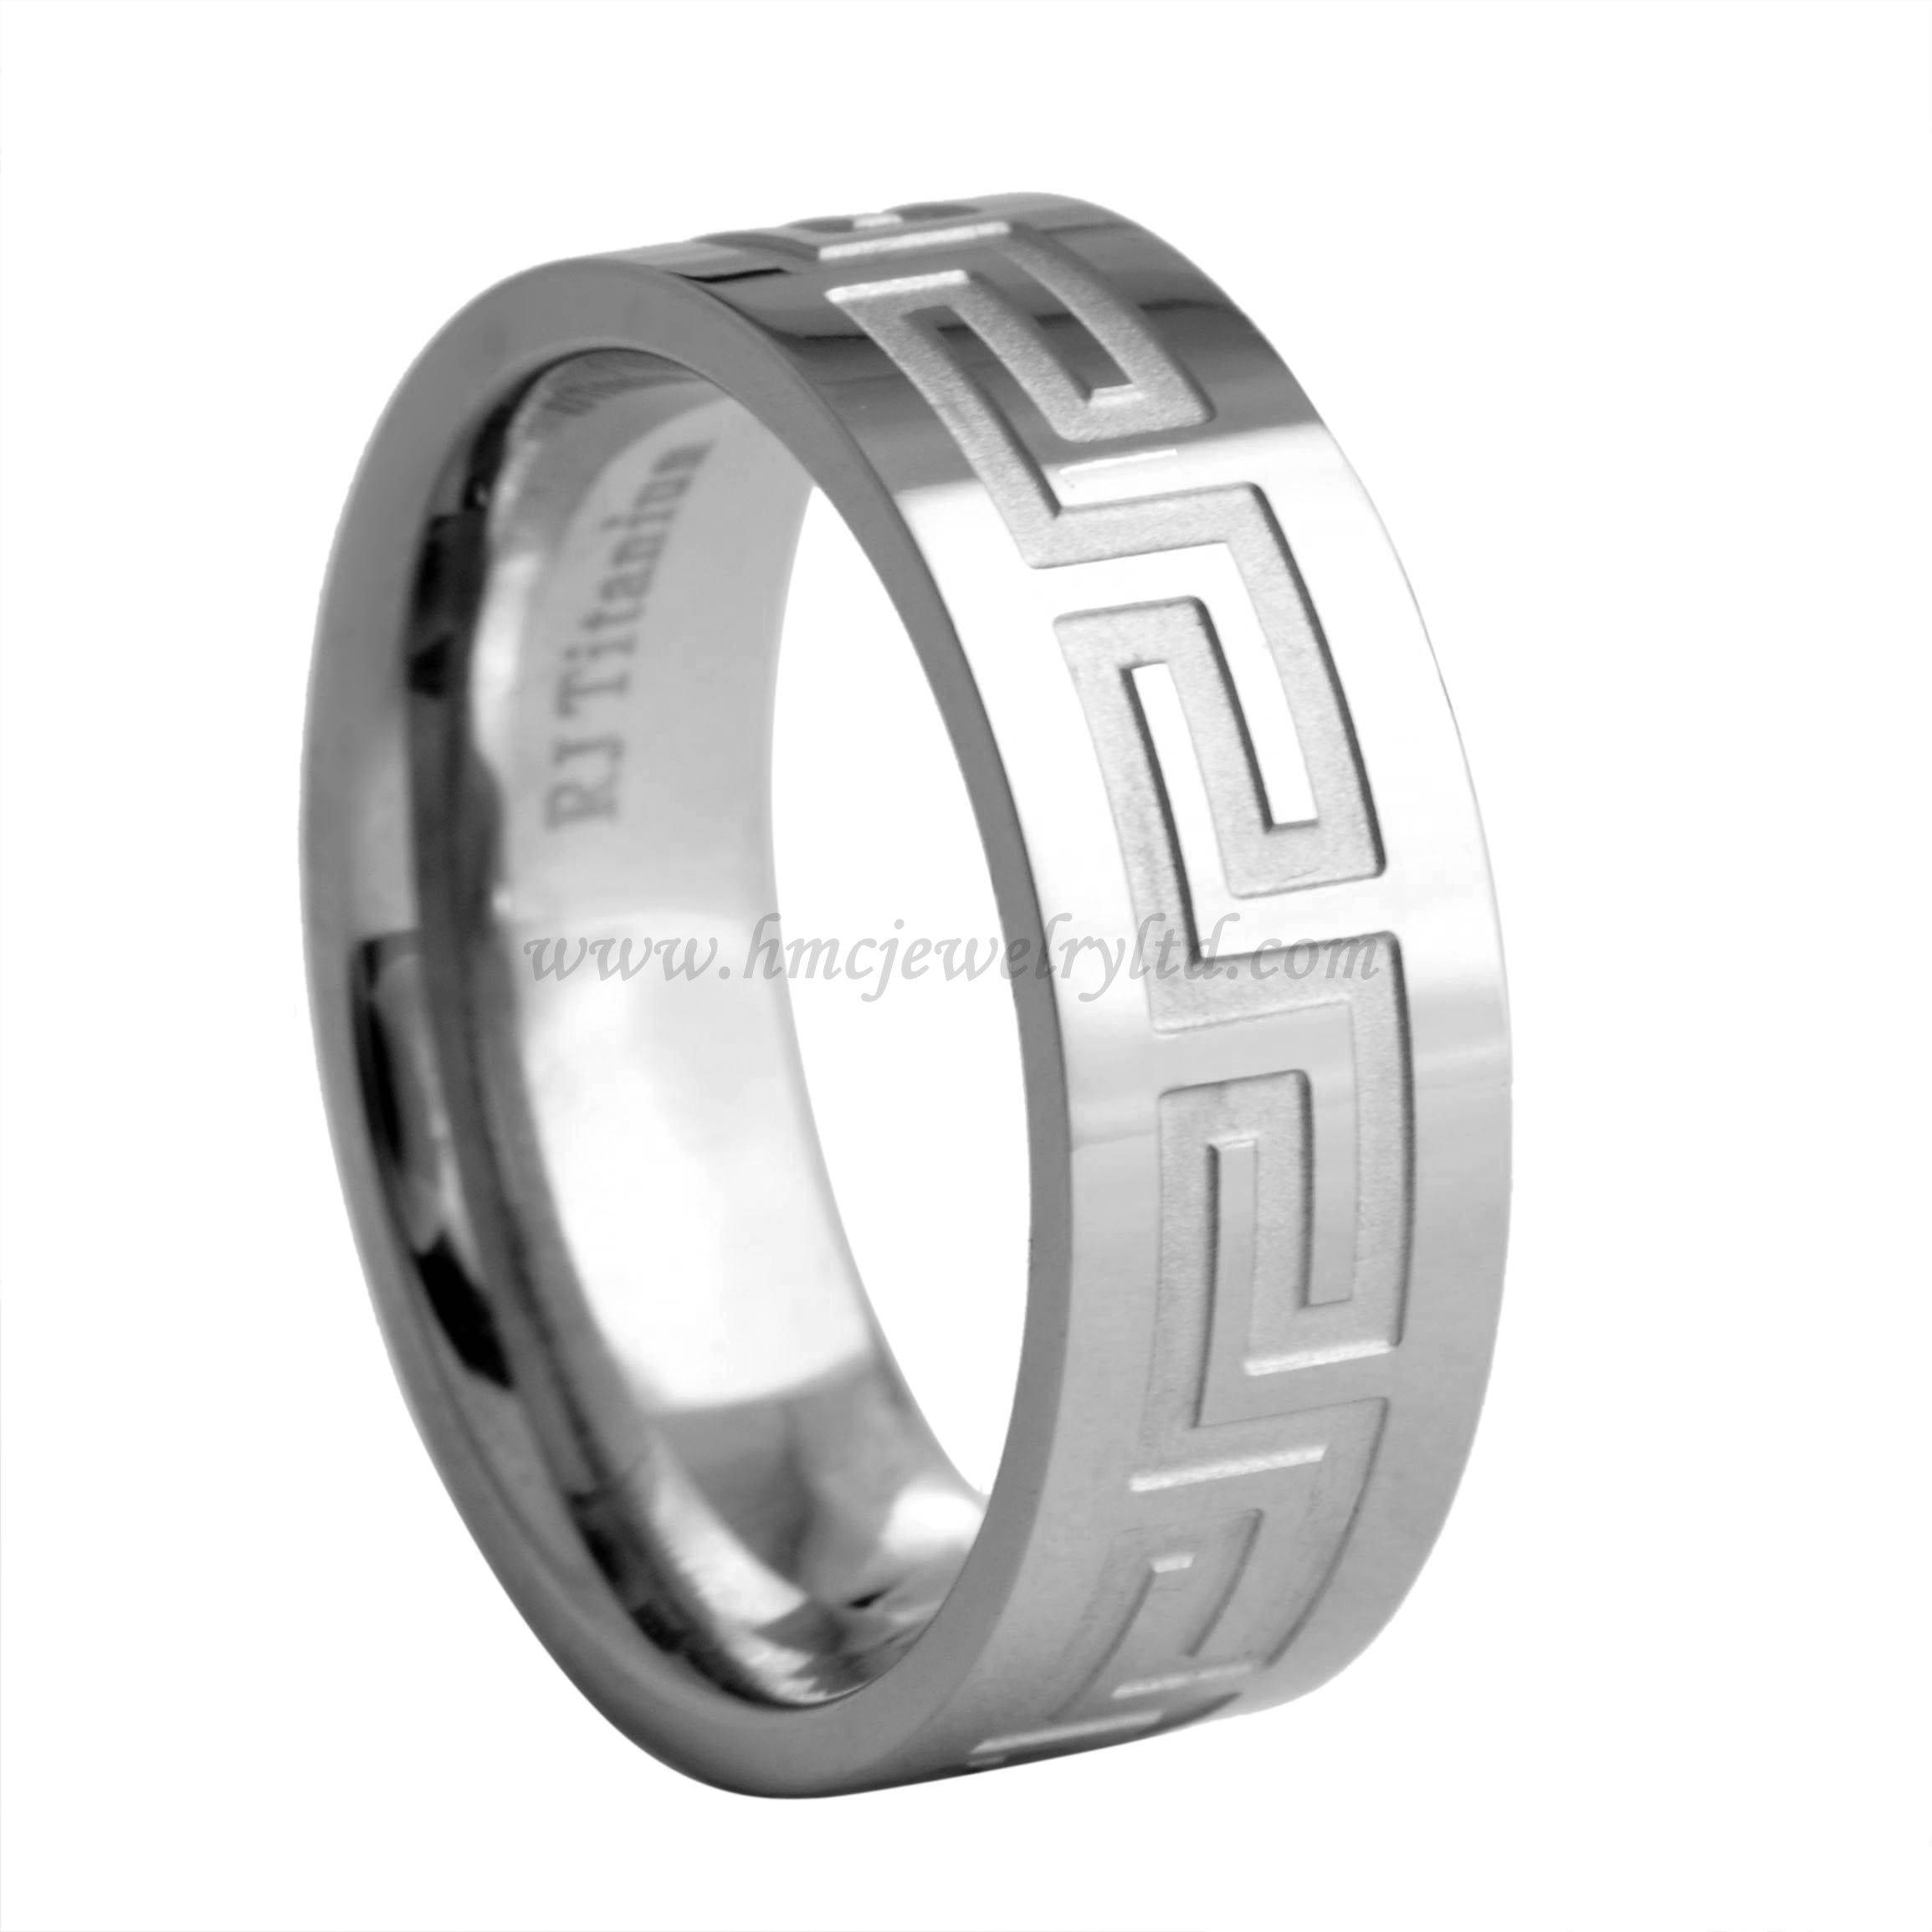 Top Quality Titanium Steel Rings, Greek Key Wedding Rings